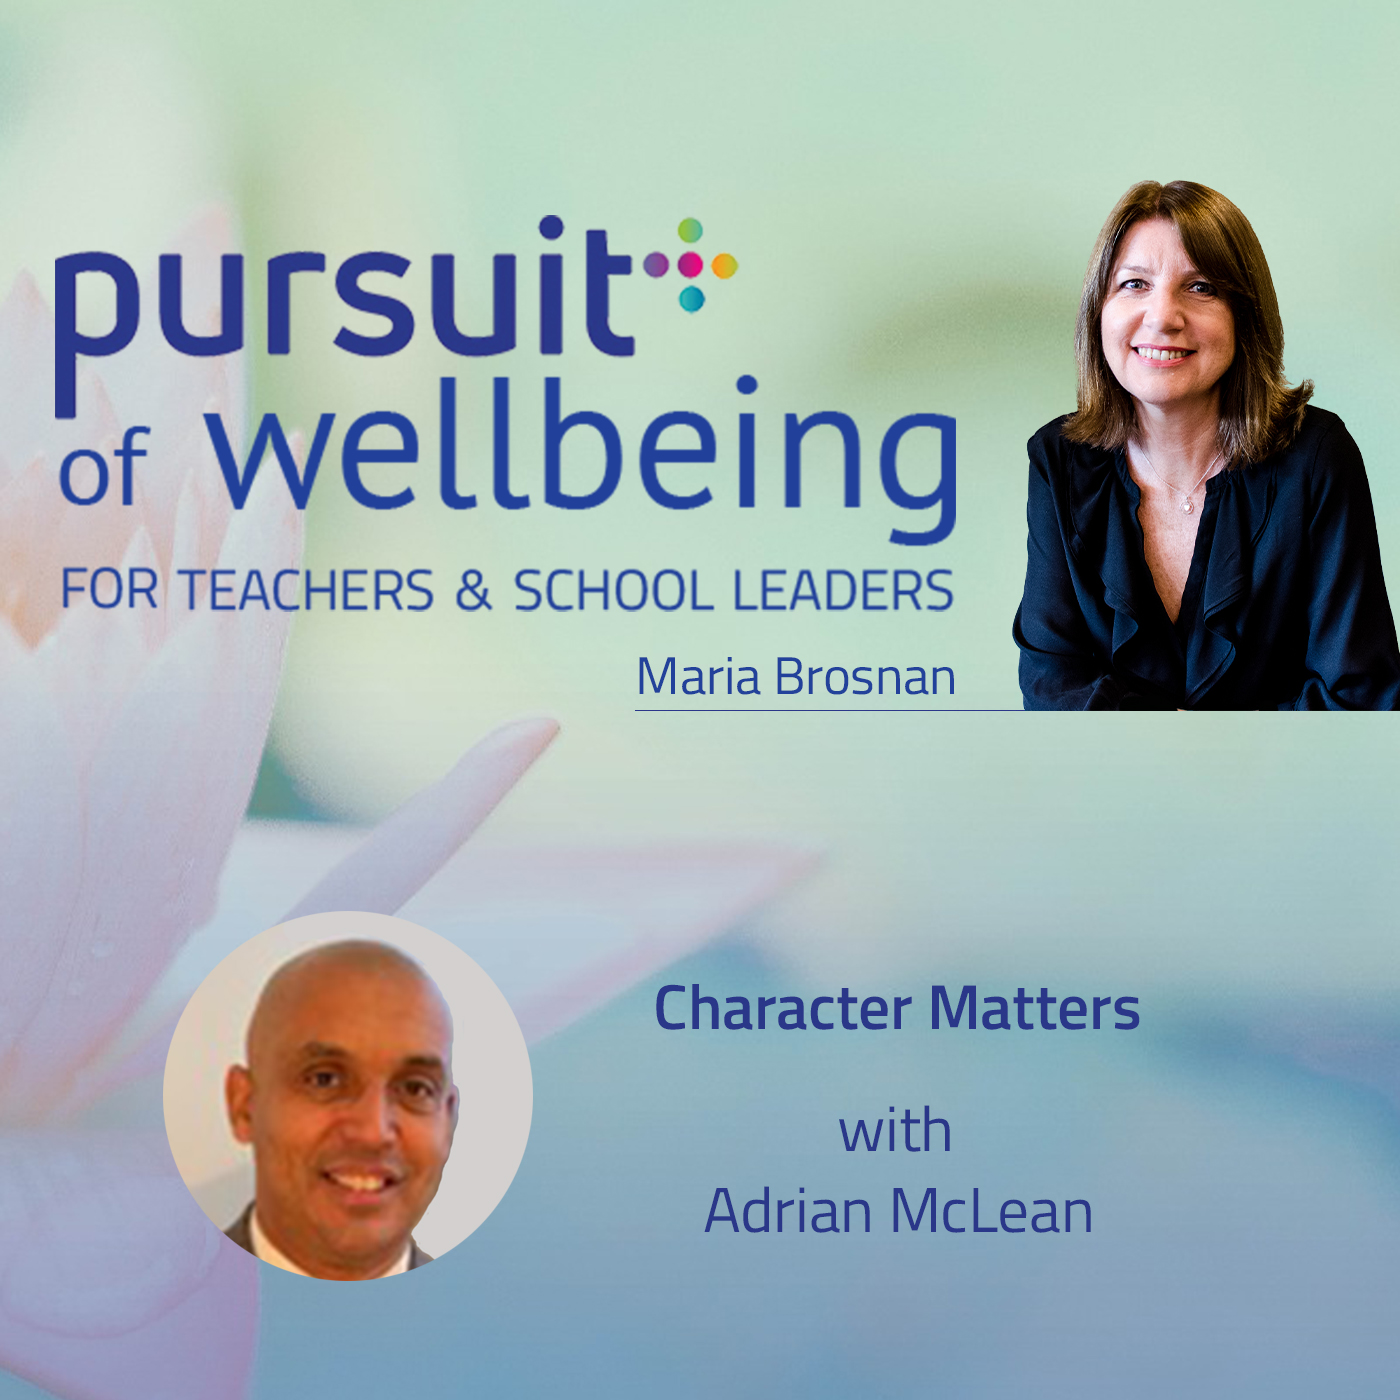 Character Matters with Adrian McLean